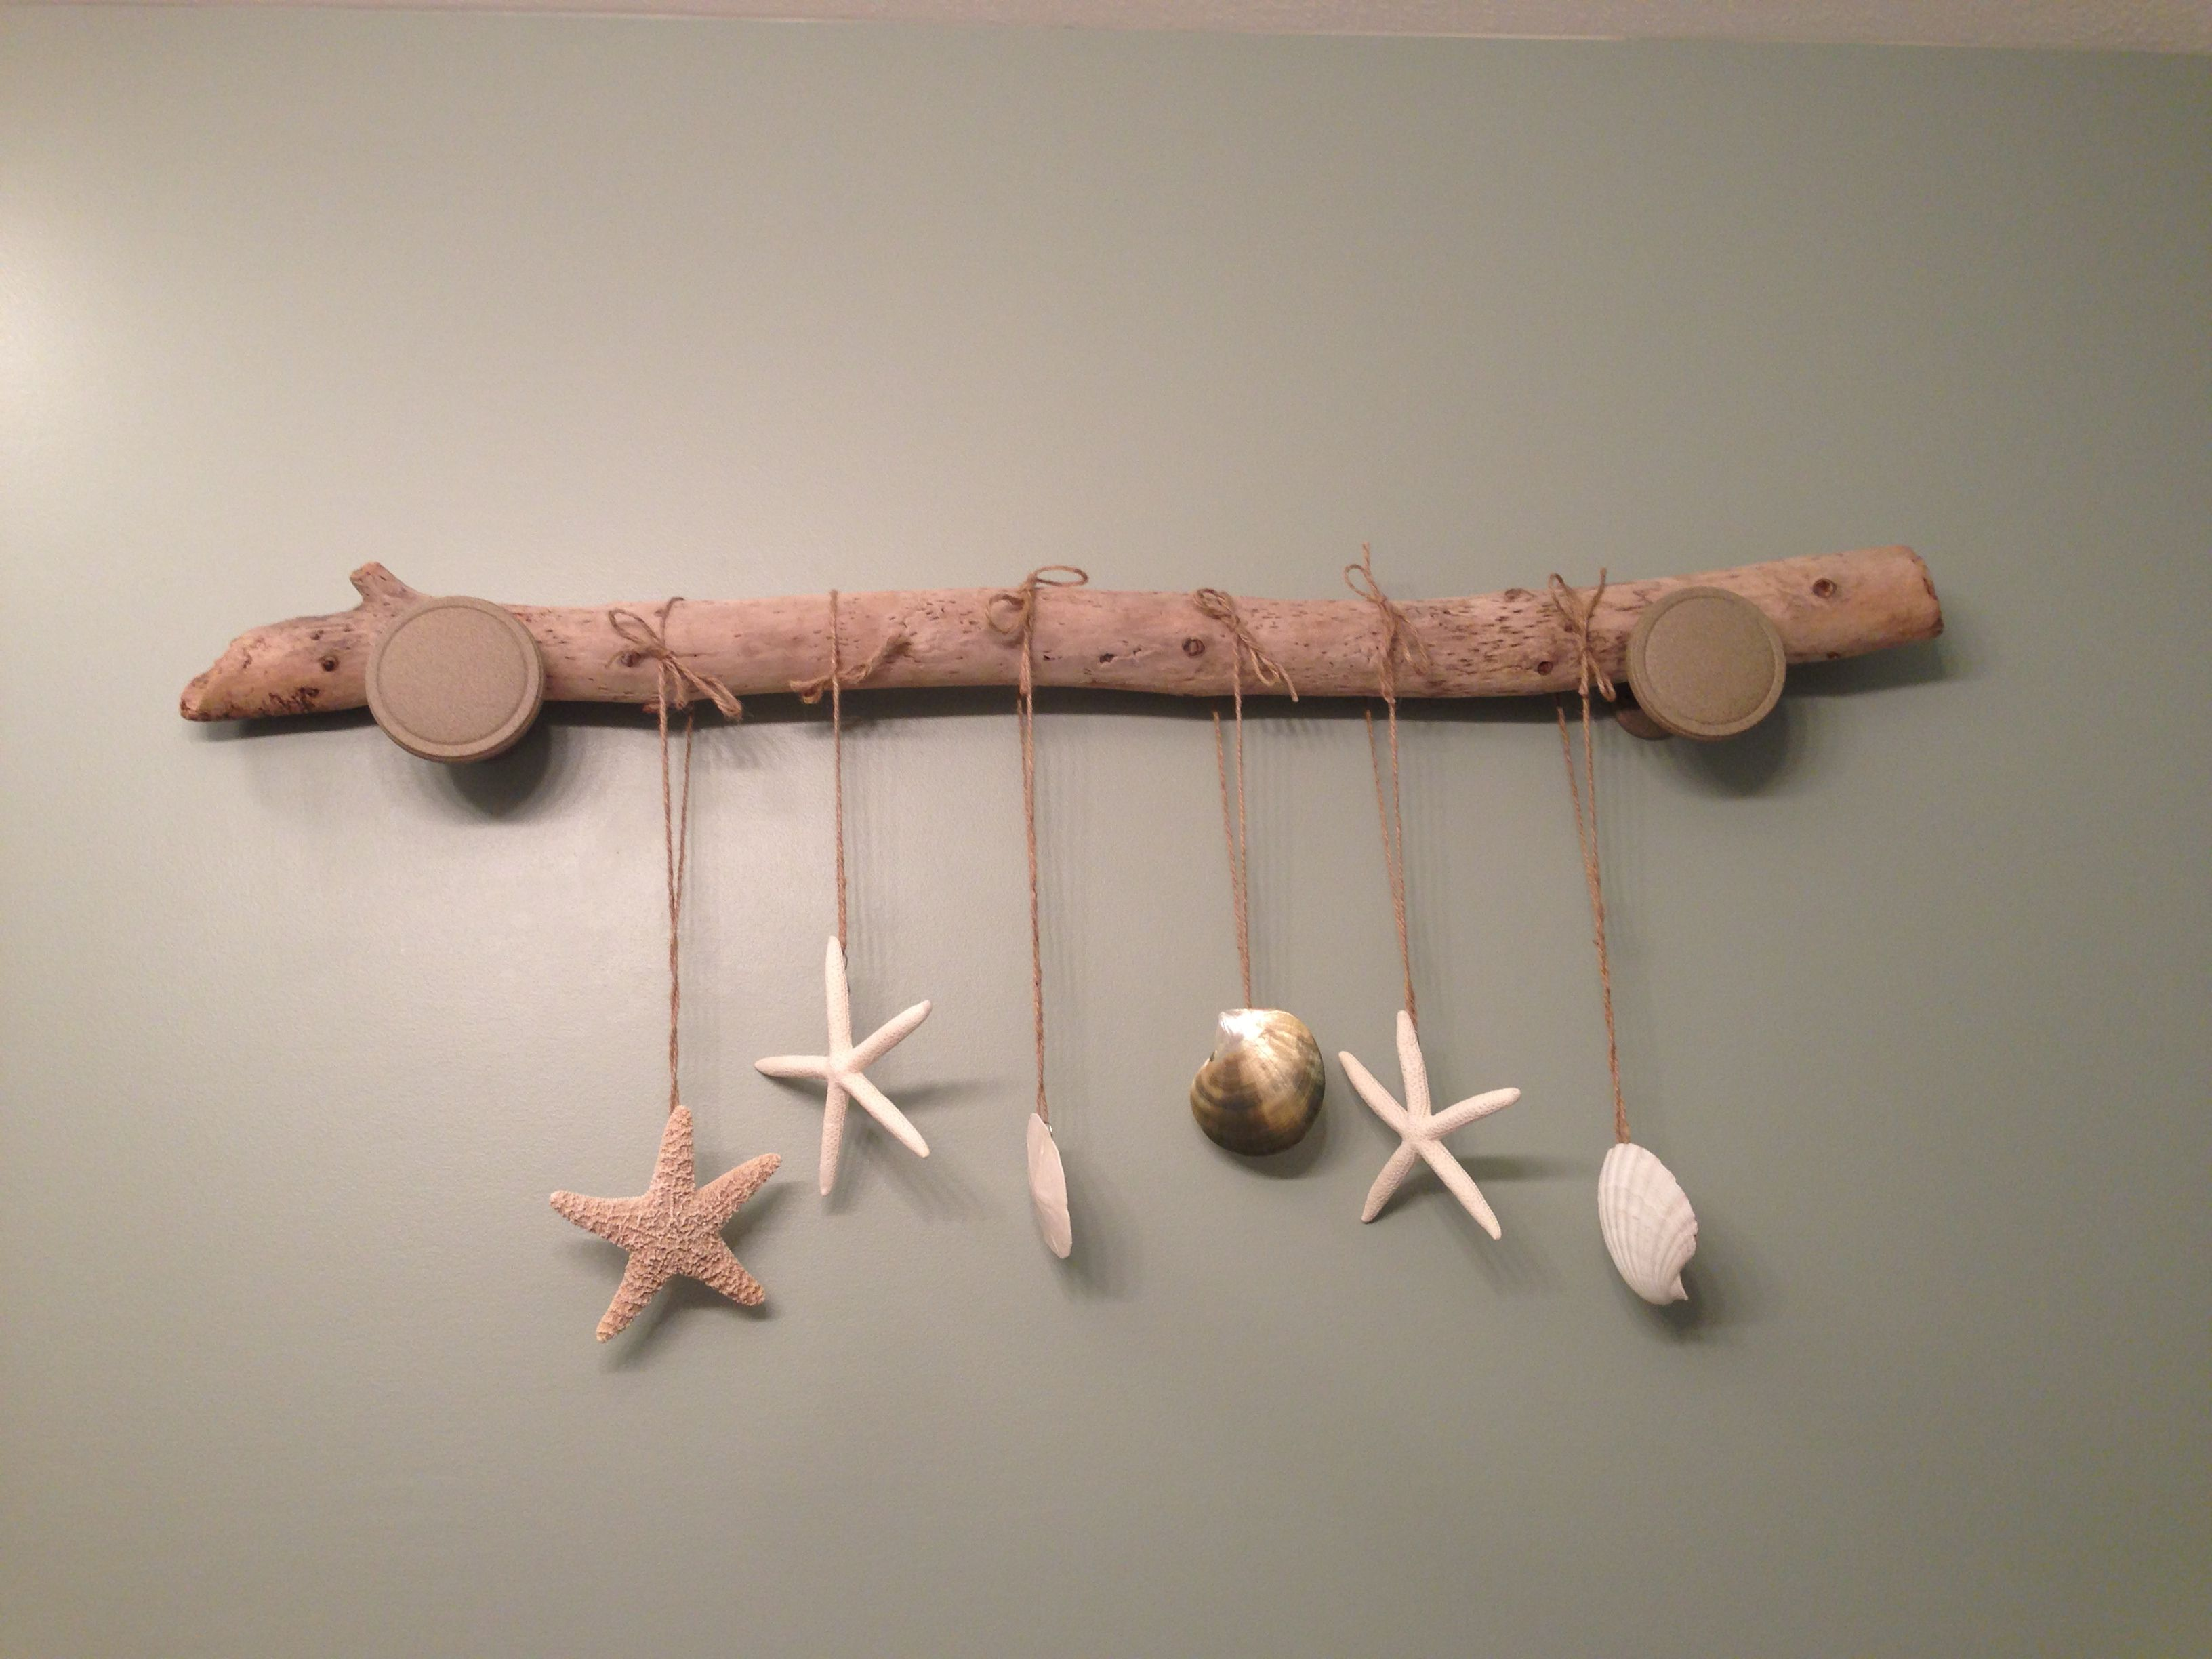 Driftwood project.... Dried out drift wood about 4 ft long, variety of shells and starfish and sand dollars with hooks/wire loops hot glued to the back, twine to tie them on to the wood, and curtain rod holders spray painted a neutral color to match the wood